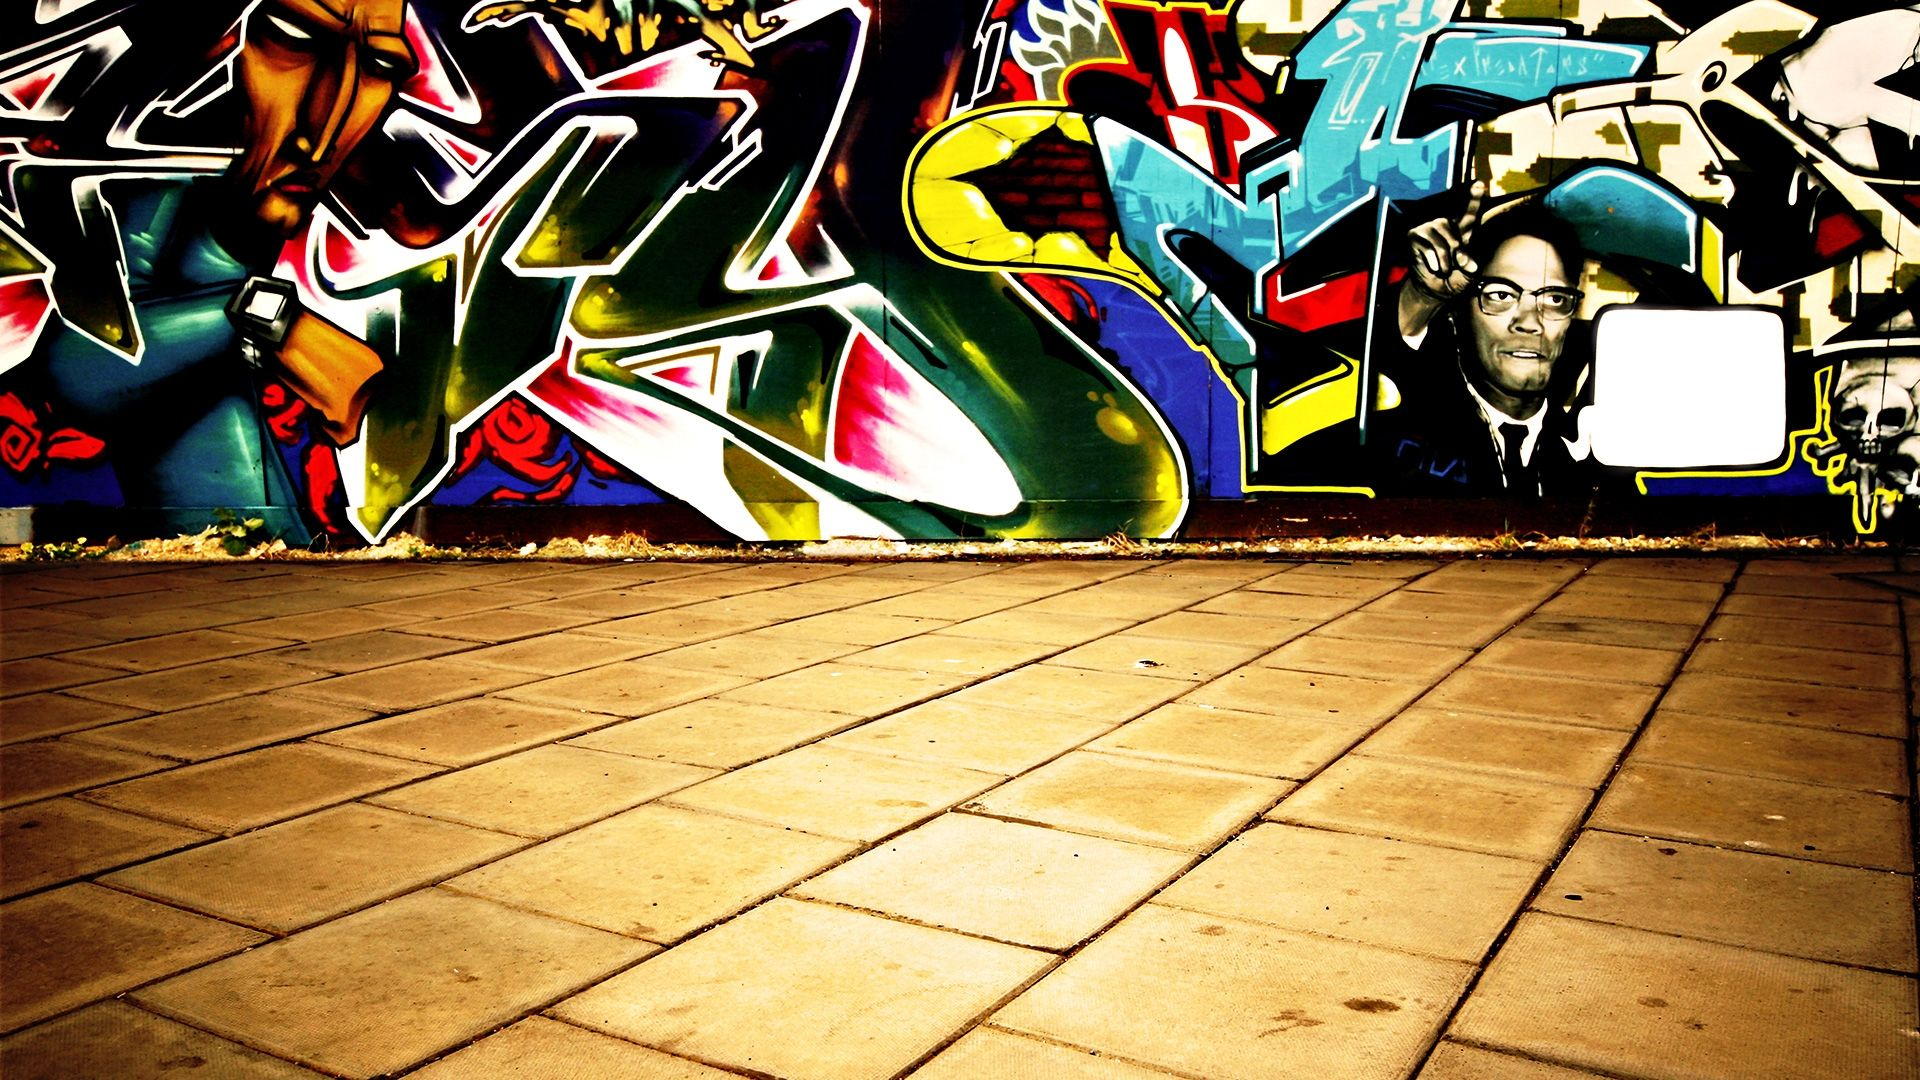 Wall Graffiti Colorful Http Www Wallpapers4u Org Wall Graffiti Colorful Graffiti Wallpaper Street Art Graffiti Designs